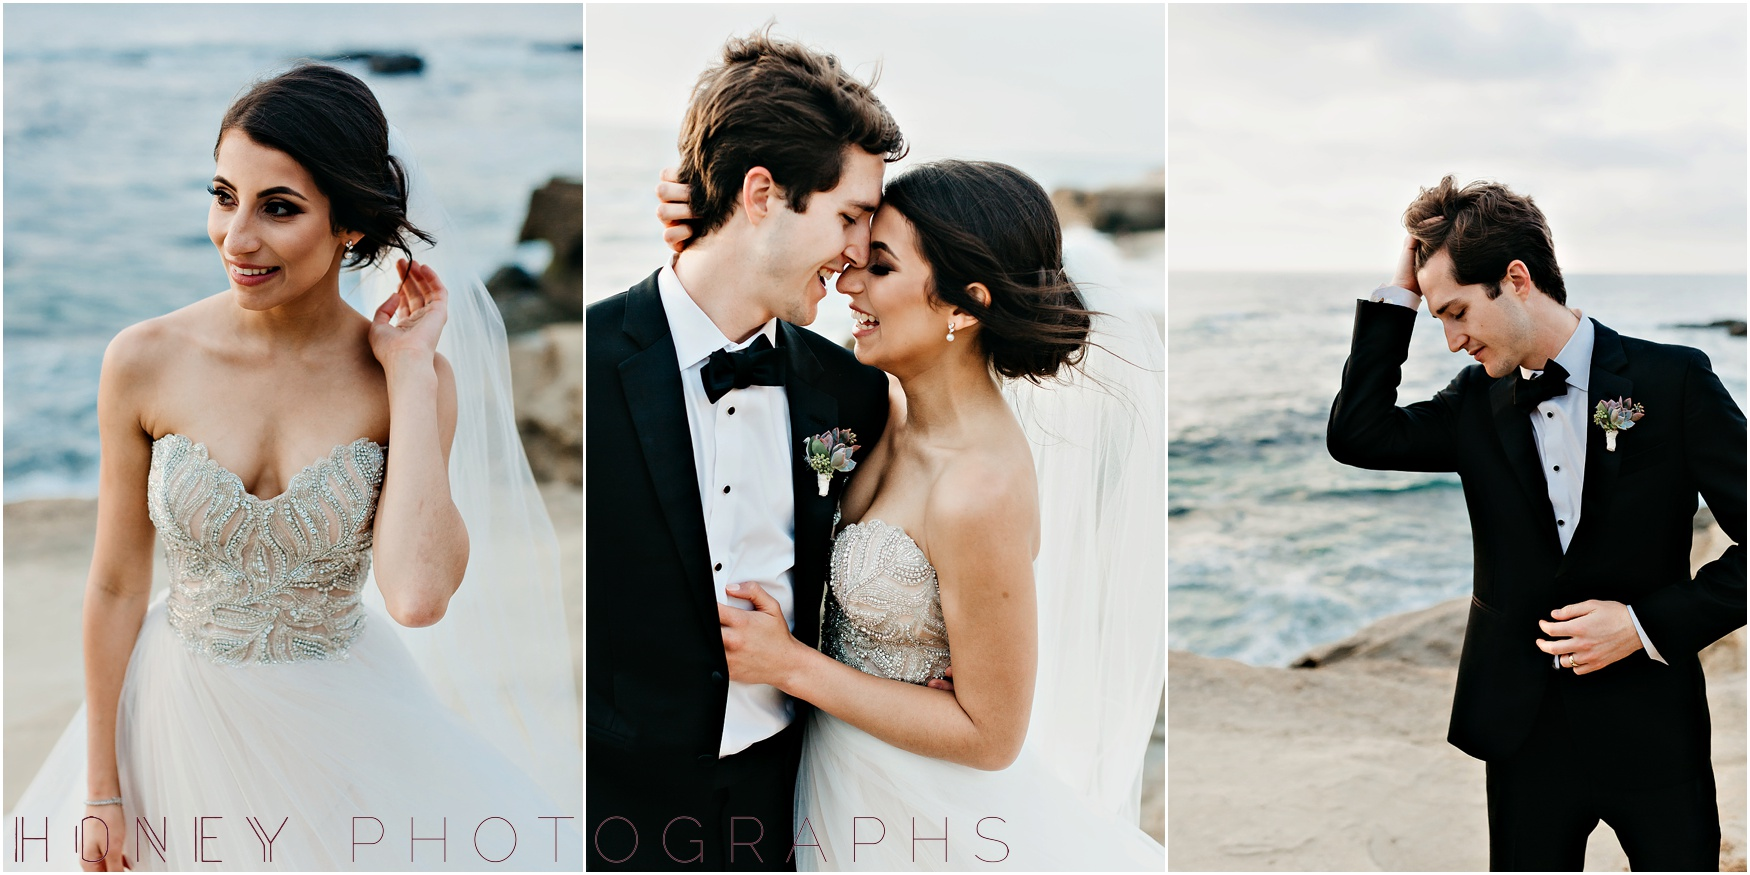 la_jolla_timeless_classic_elegant_cliffs_beach_black_tie_wedding046.jpg